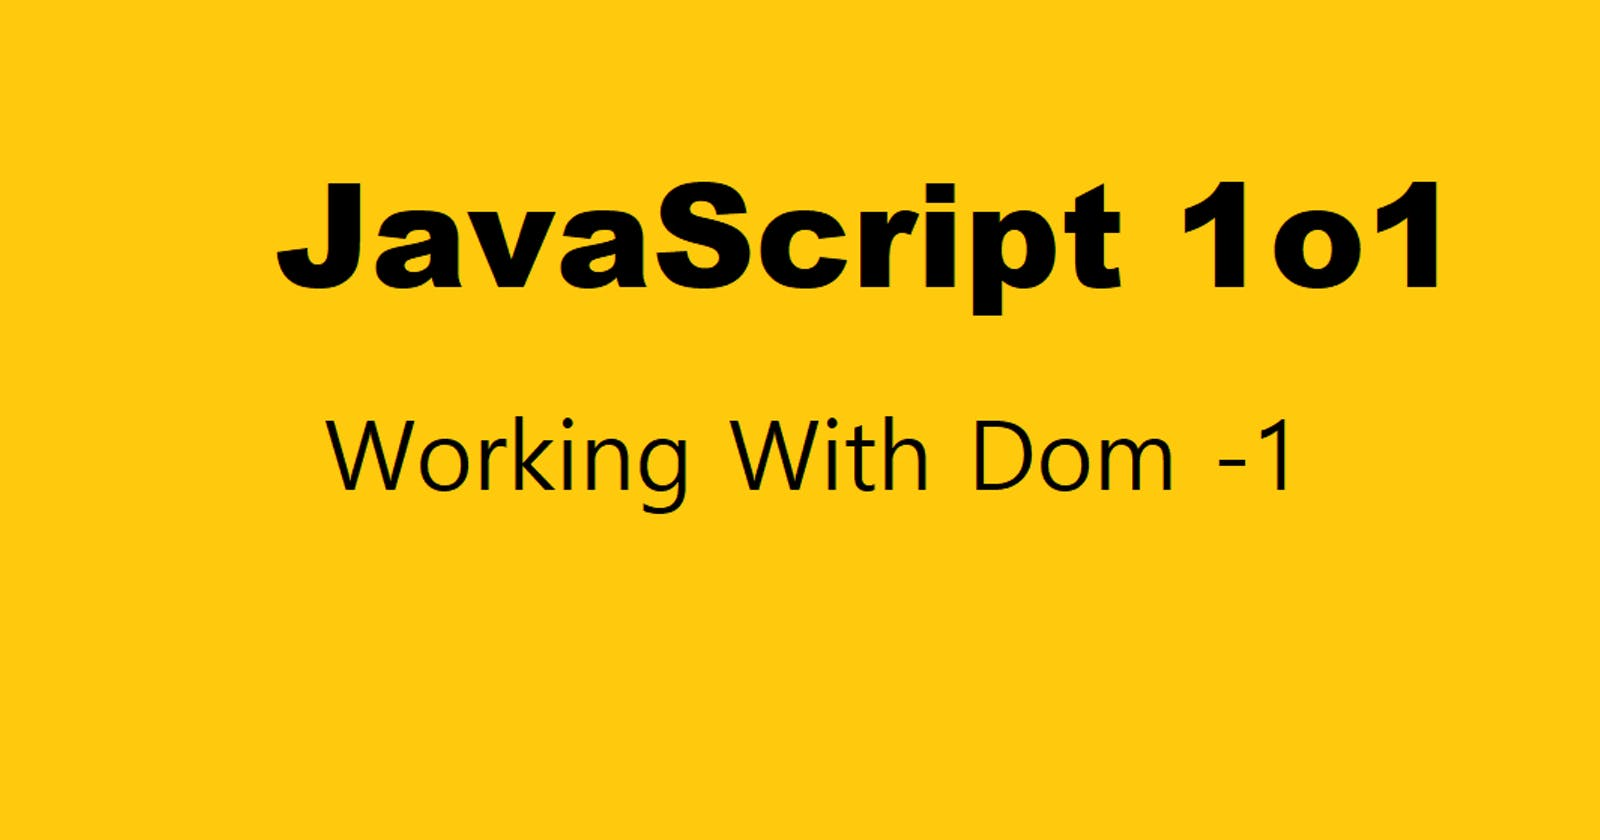 Working with DOM - 1